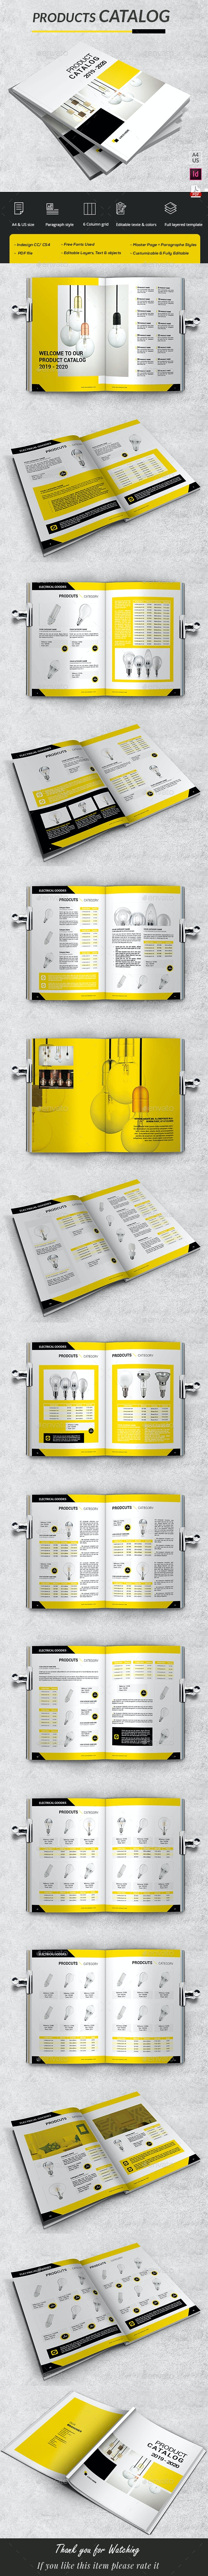 Industrial Catalog Products A4 - Catalogs Brochures